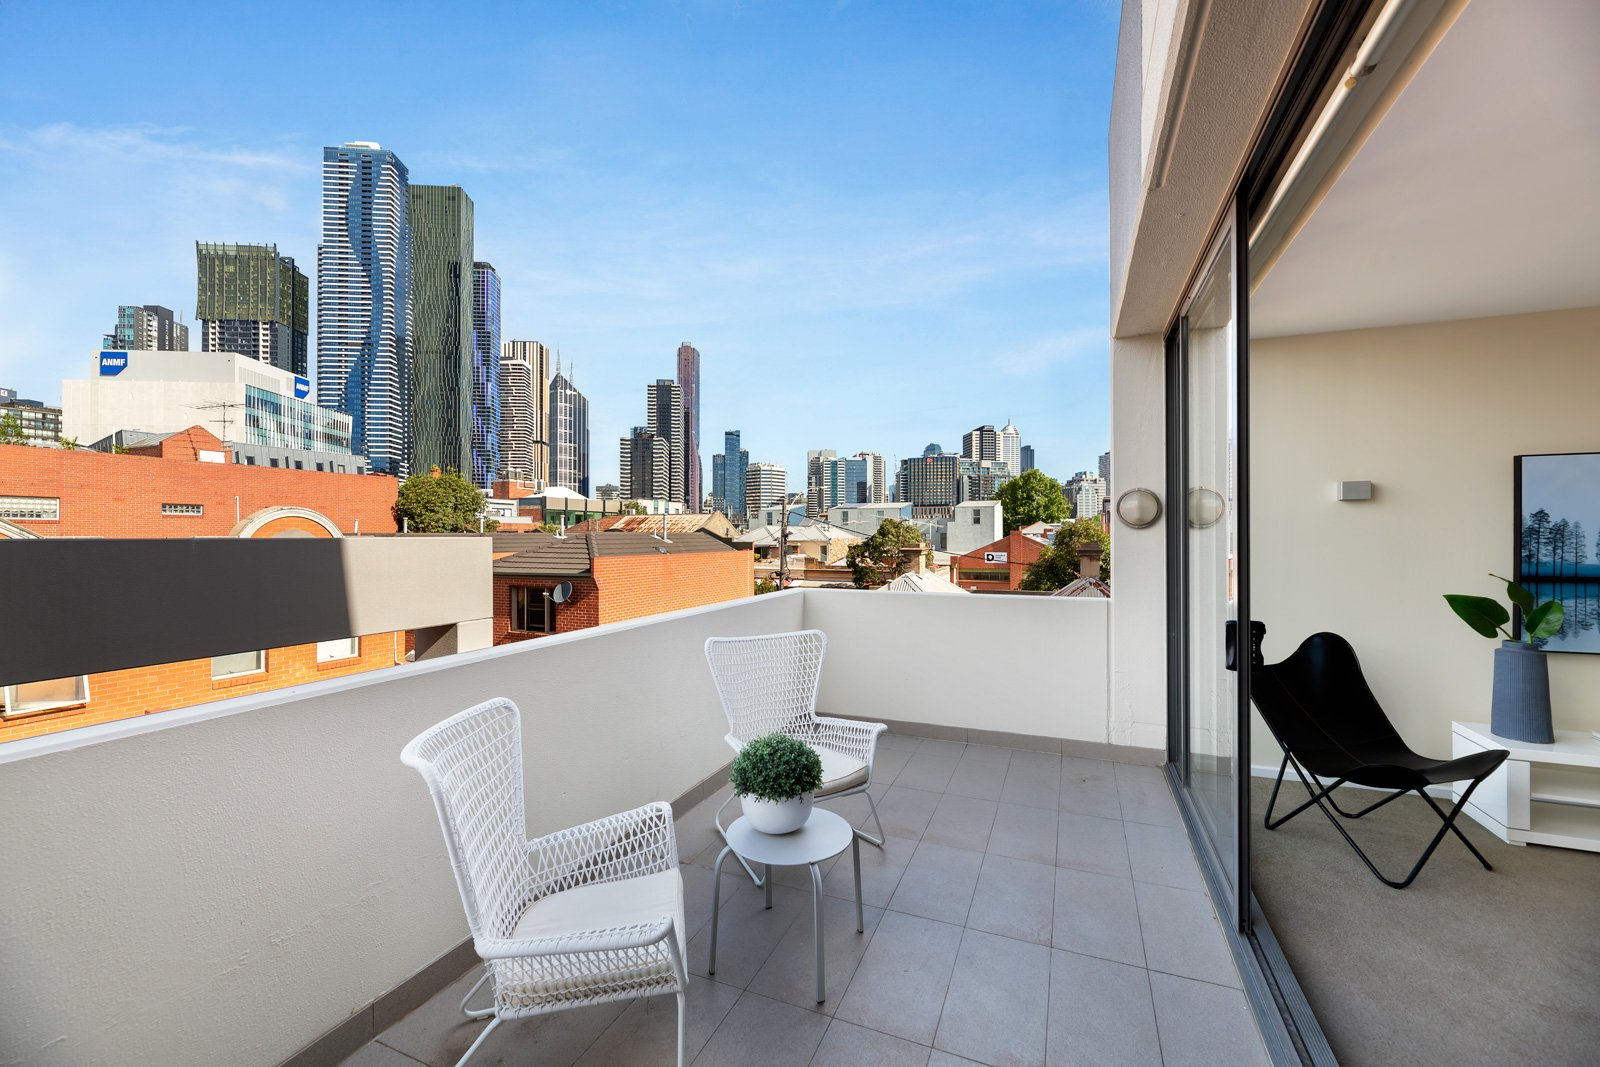 109/150 Peel Street, North Melbourne, VIC, 3051 image 5